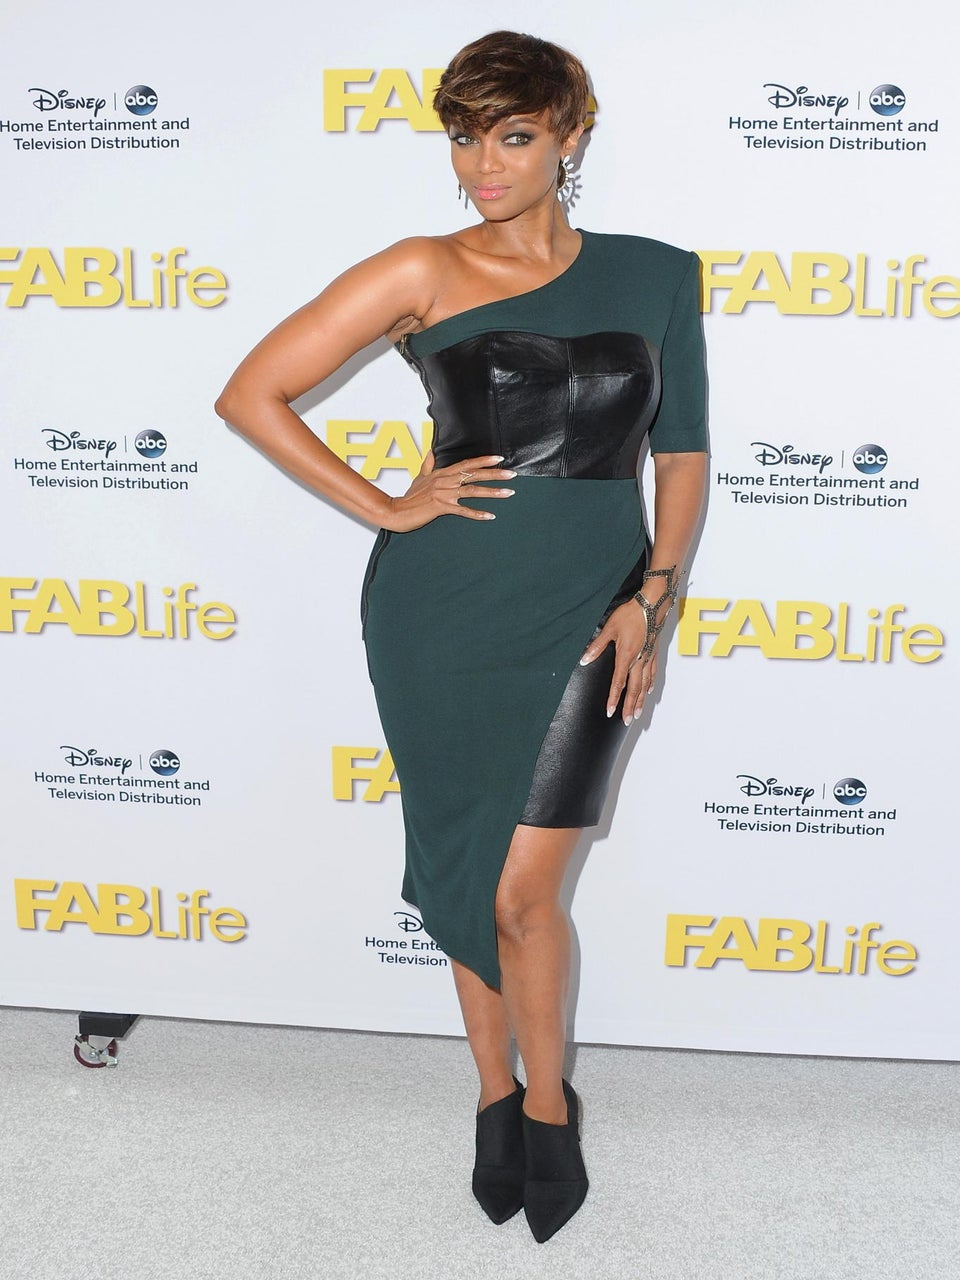 Tyra Banks Will Reprise Role in 'Life-Size' Sequel